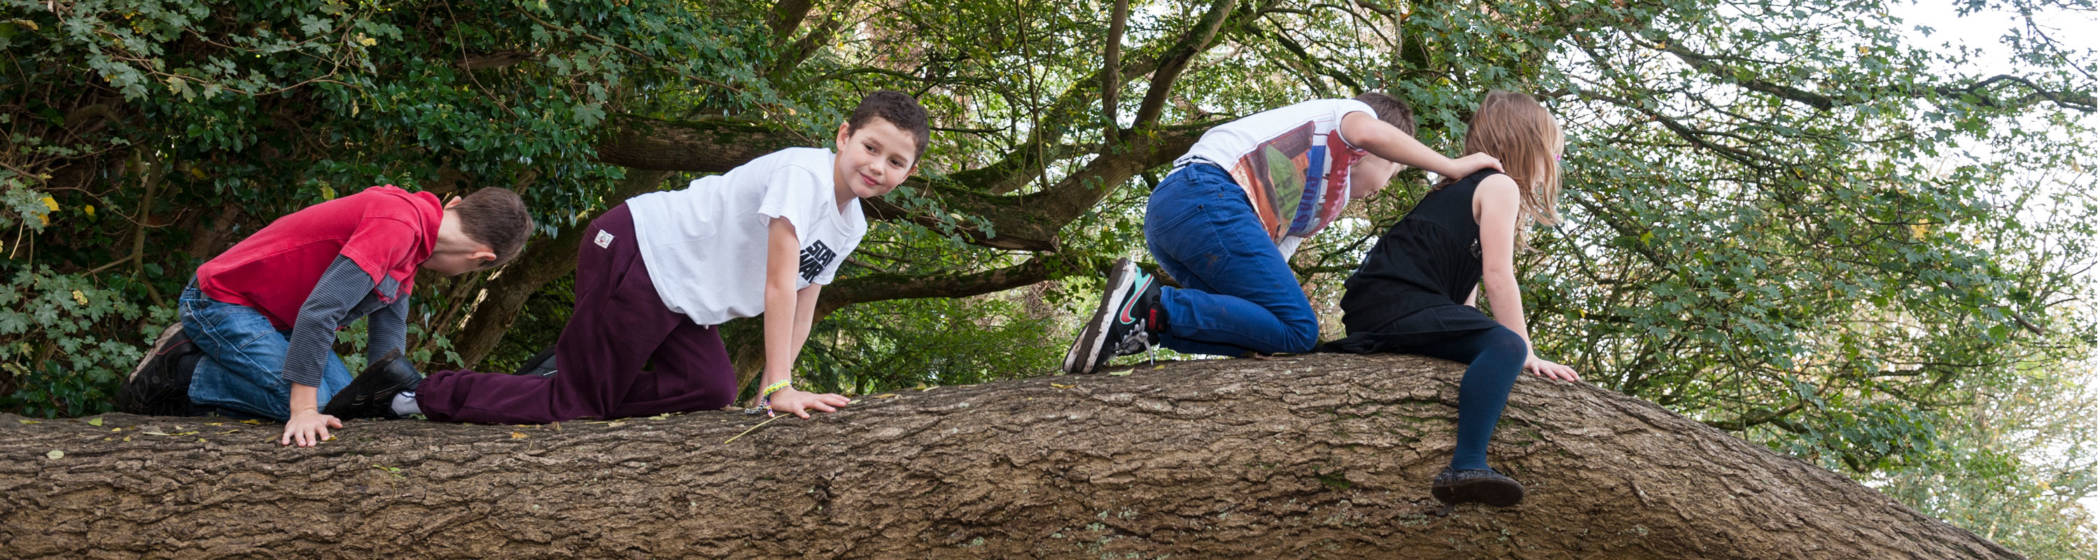 Children climibing on a tree